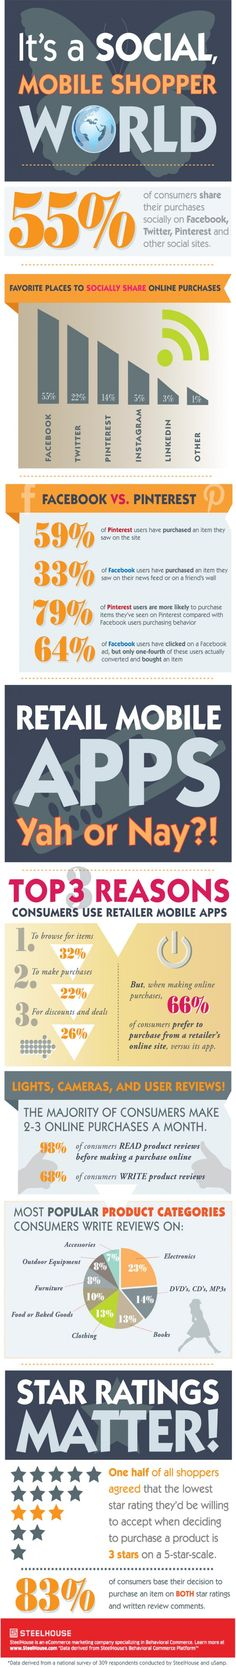 It's A Social Mobile Shopper World [INFOGRAPHIC]